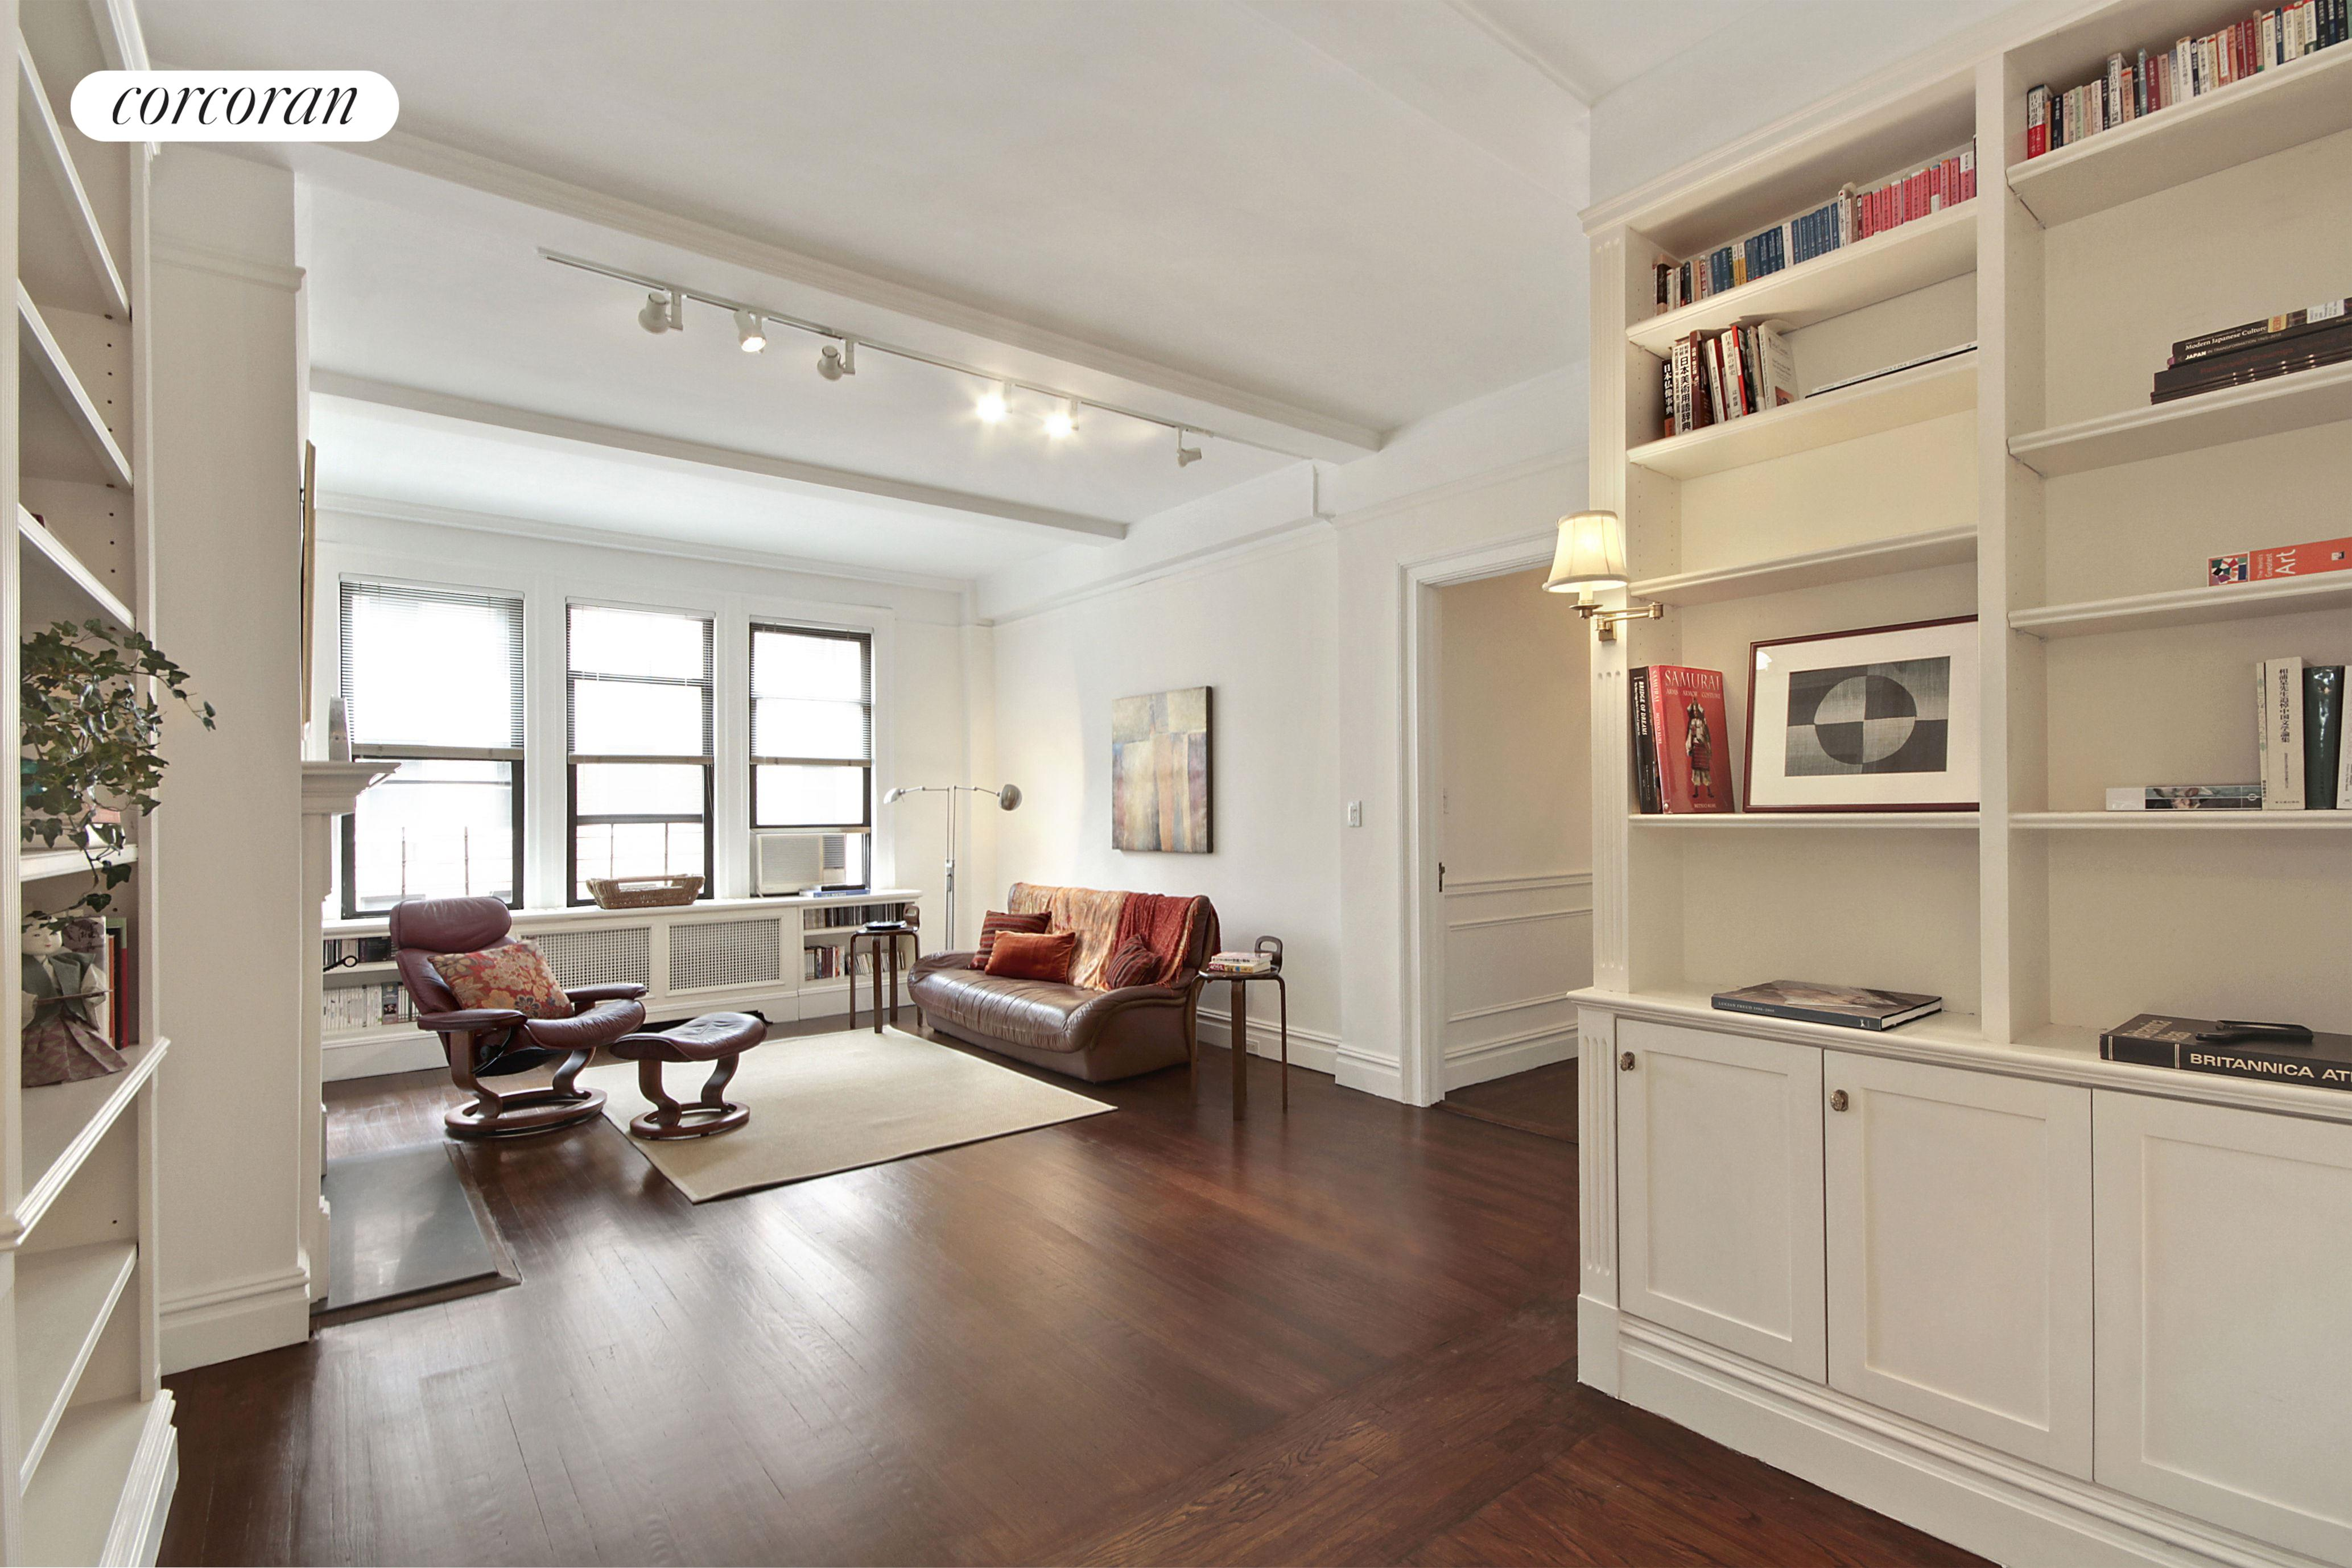 114 East 84th Street, Apt. 6A, Upper East Side